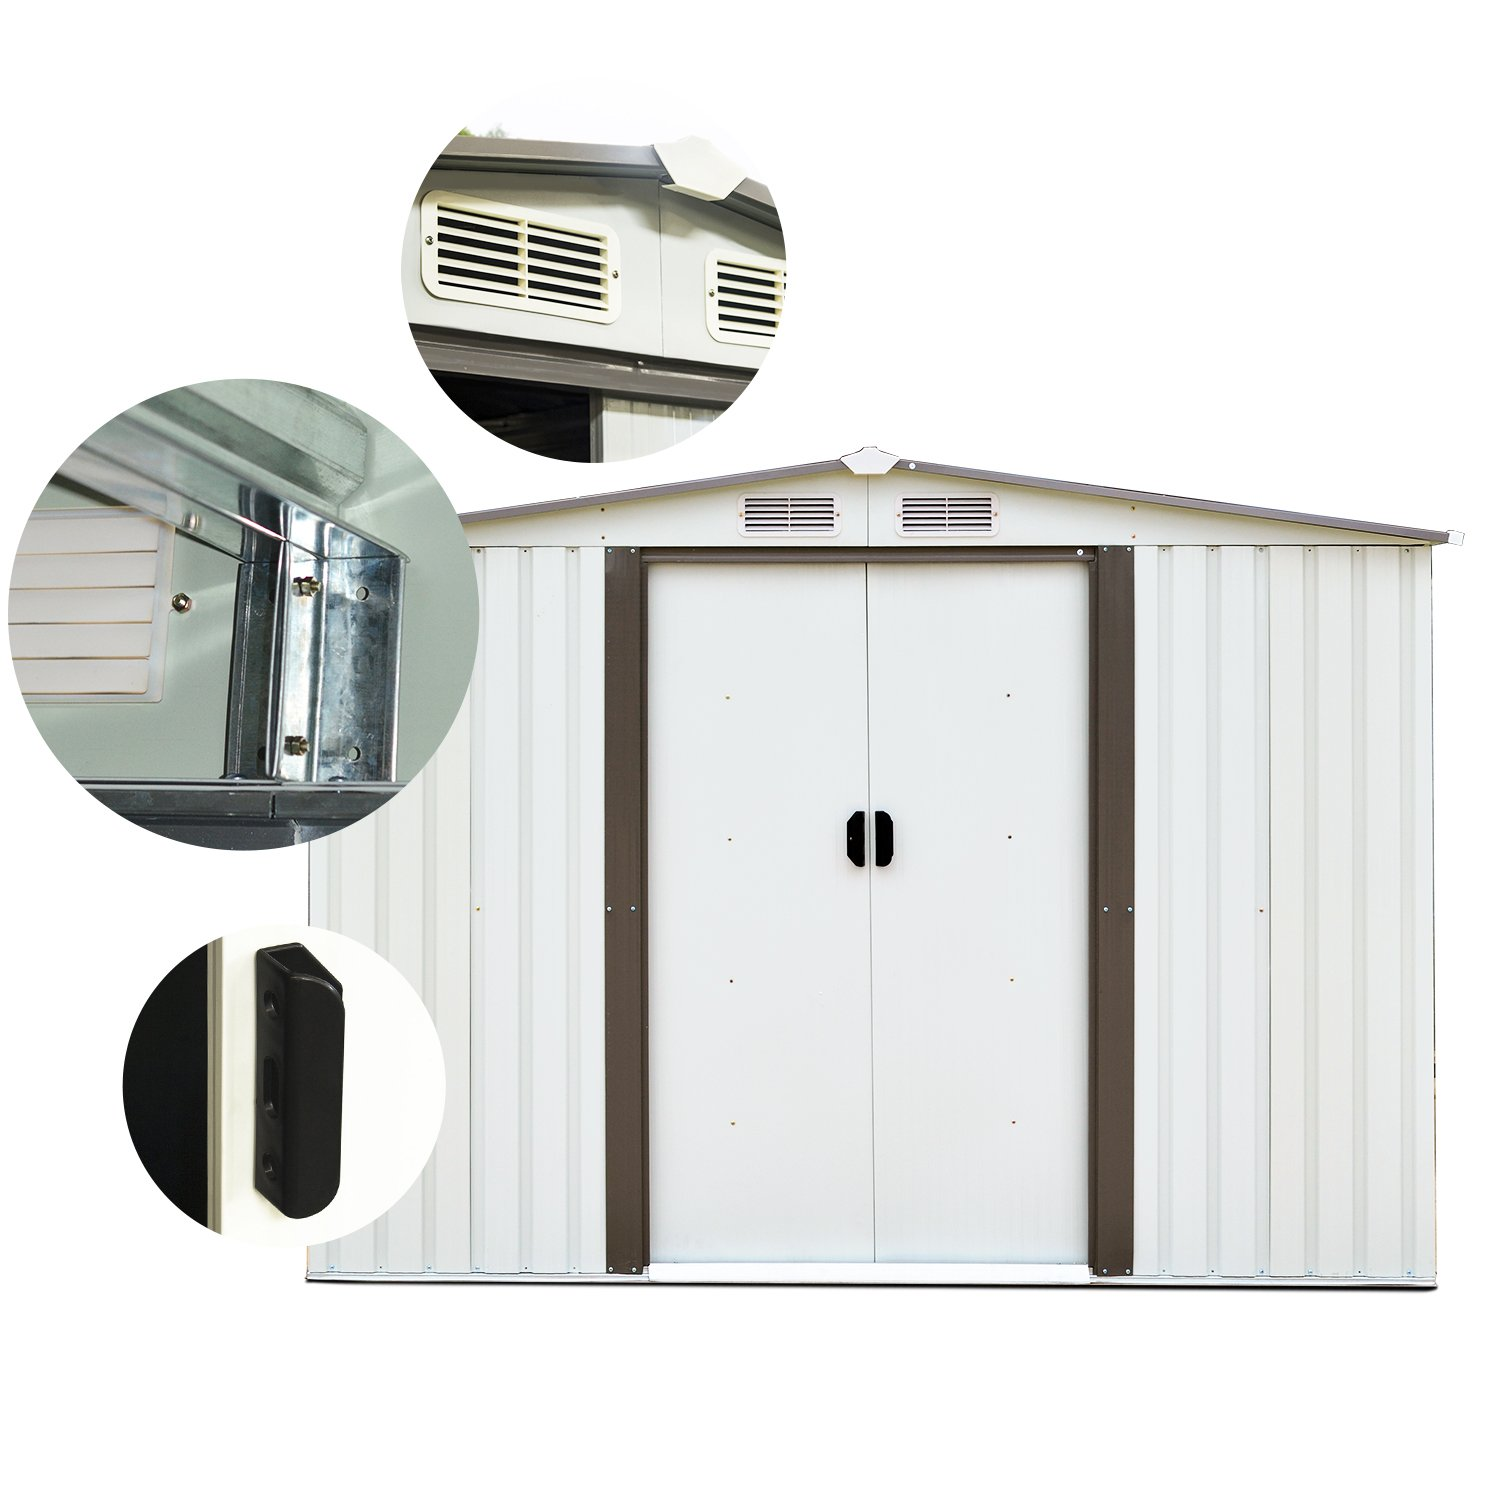 Doitpower 8 x 6 Outdoor Steel Garden Storage Utility Tool Shed large Storage Space 357 Cubic Feet Gray